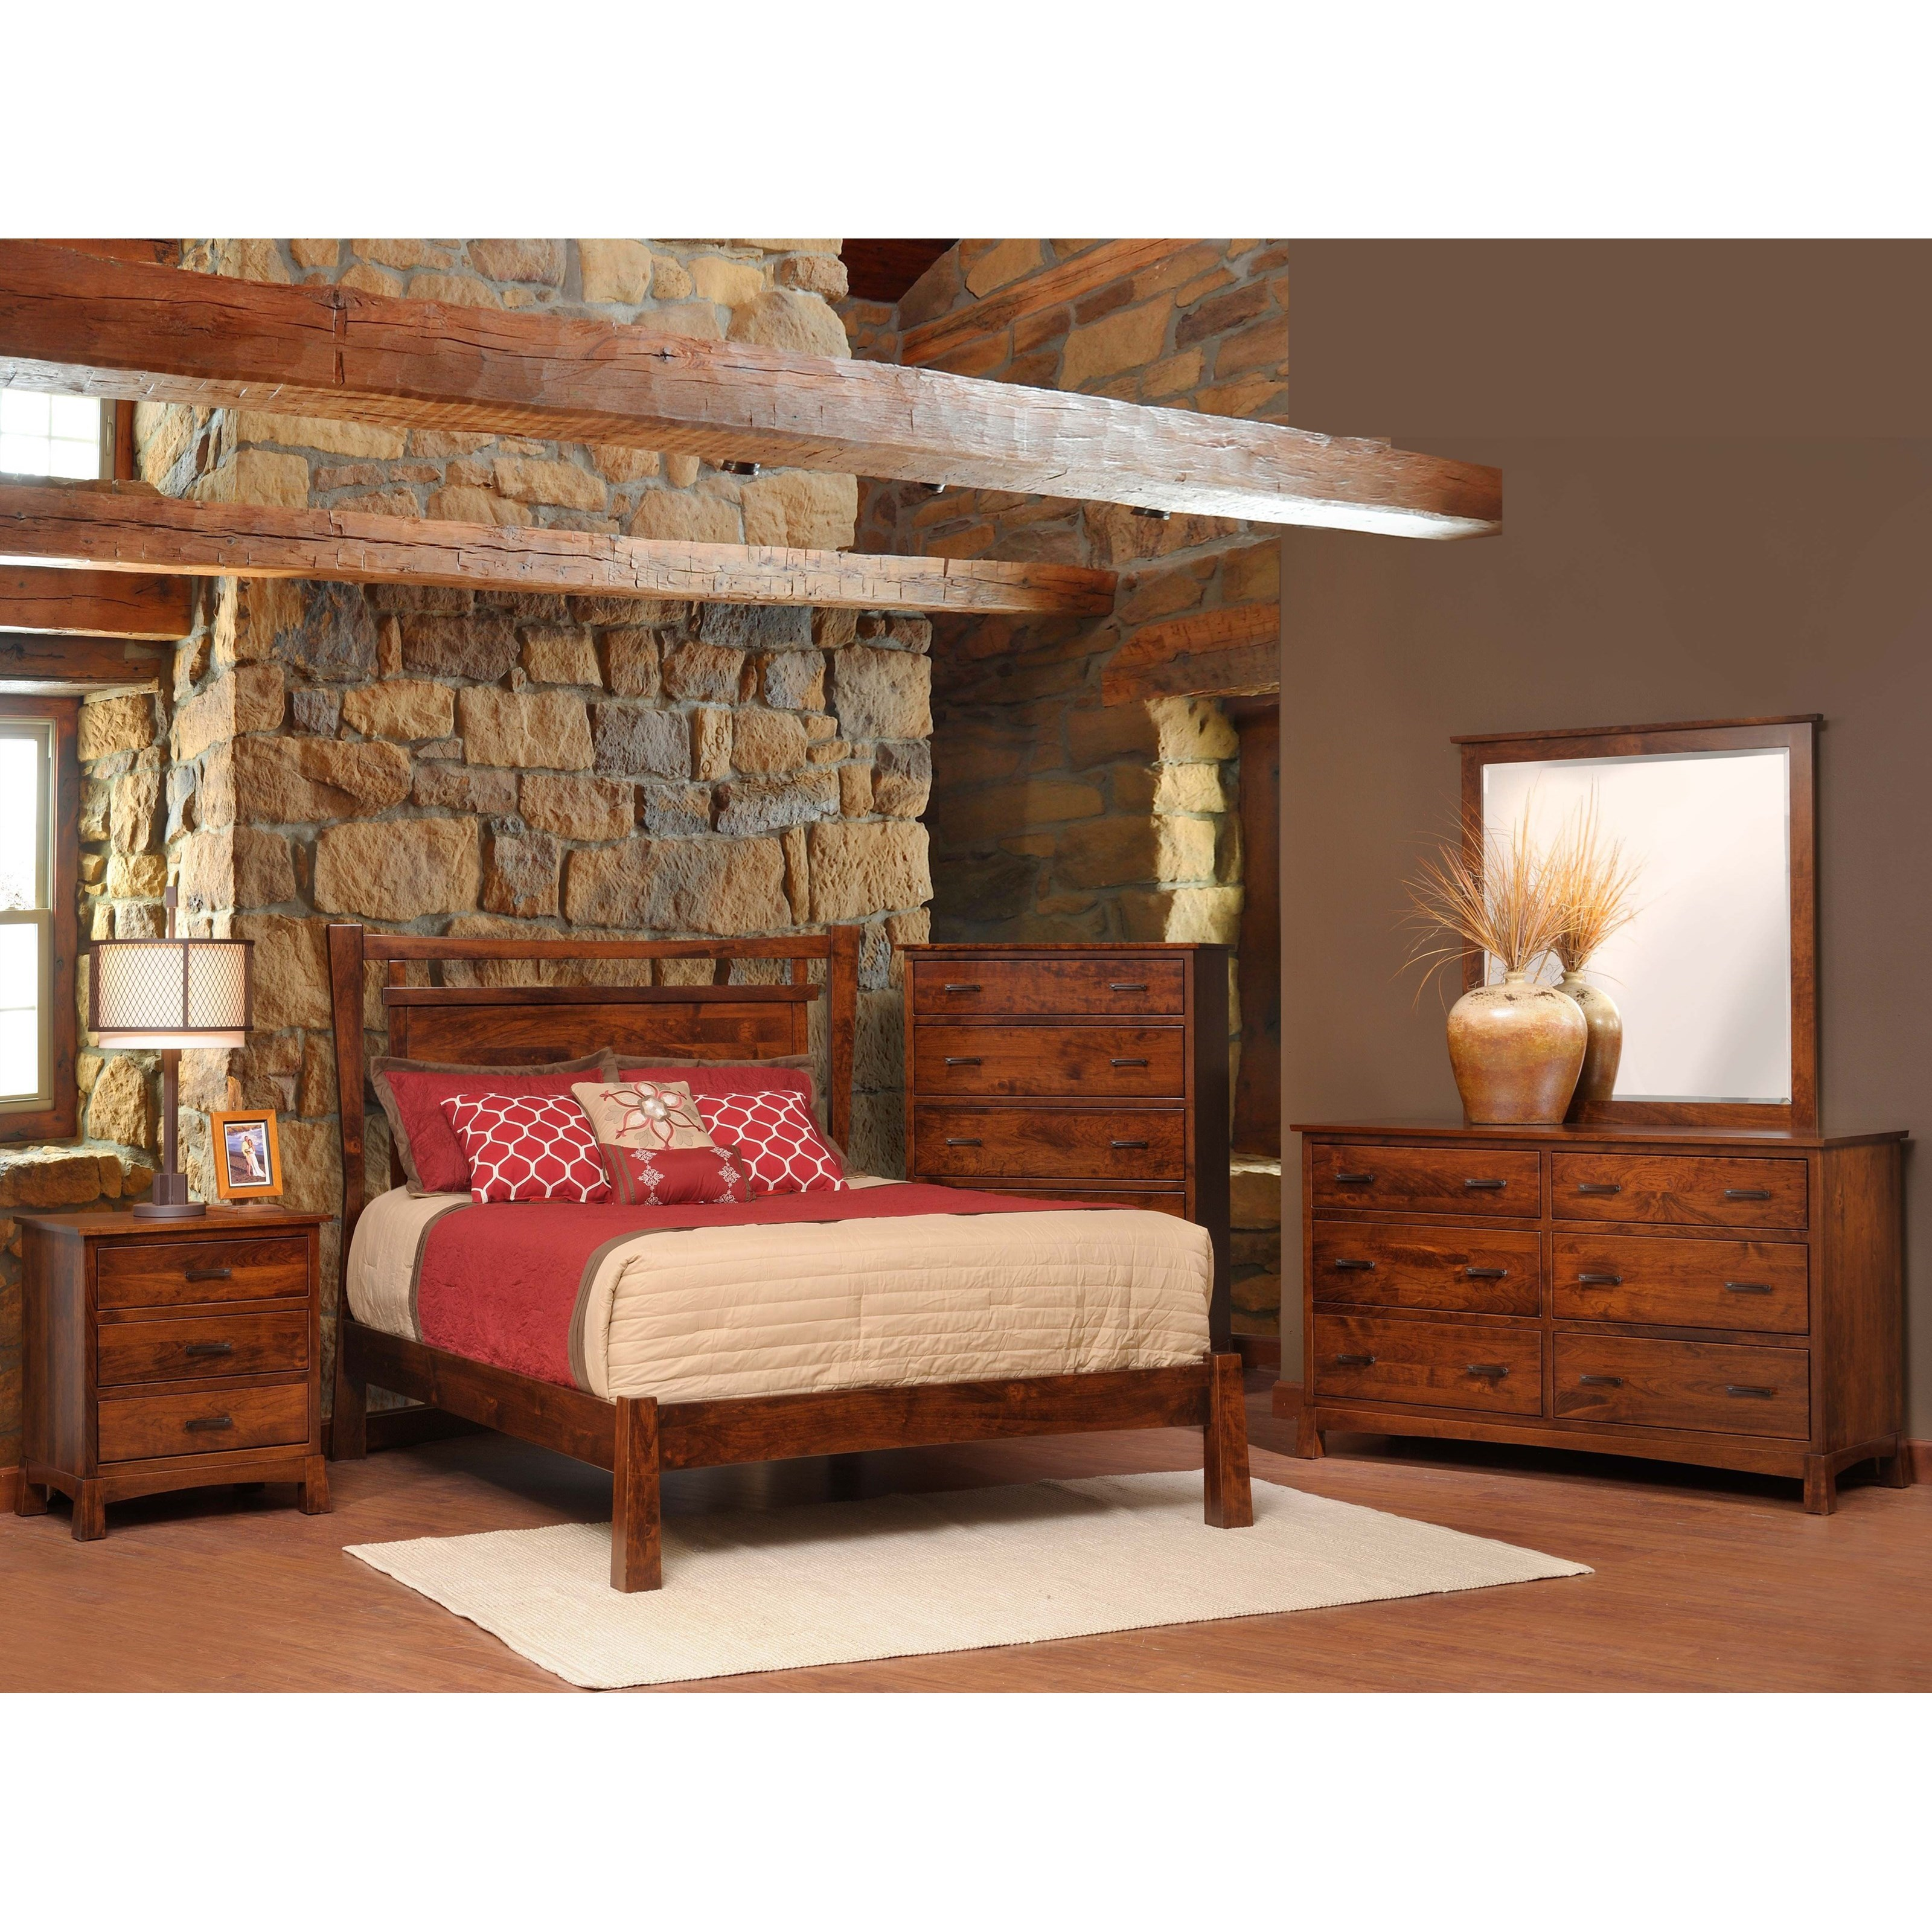 Catalina King Bedroom Group by Millcraft at Saugerties Furniture Mart